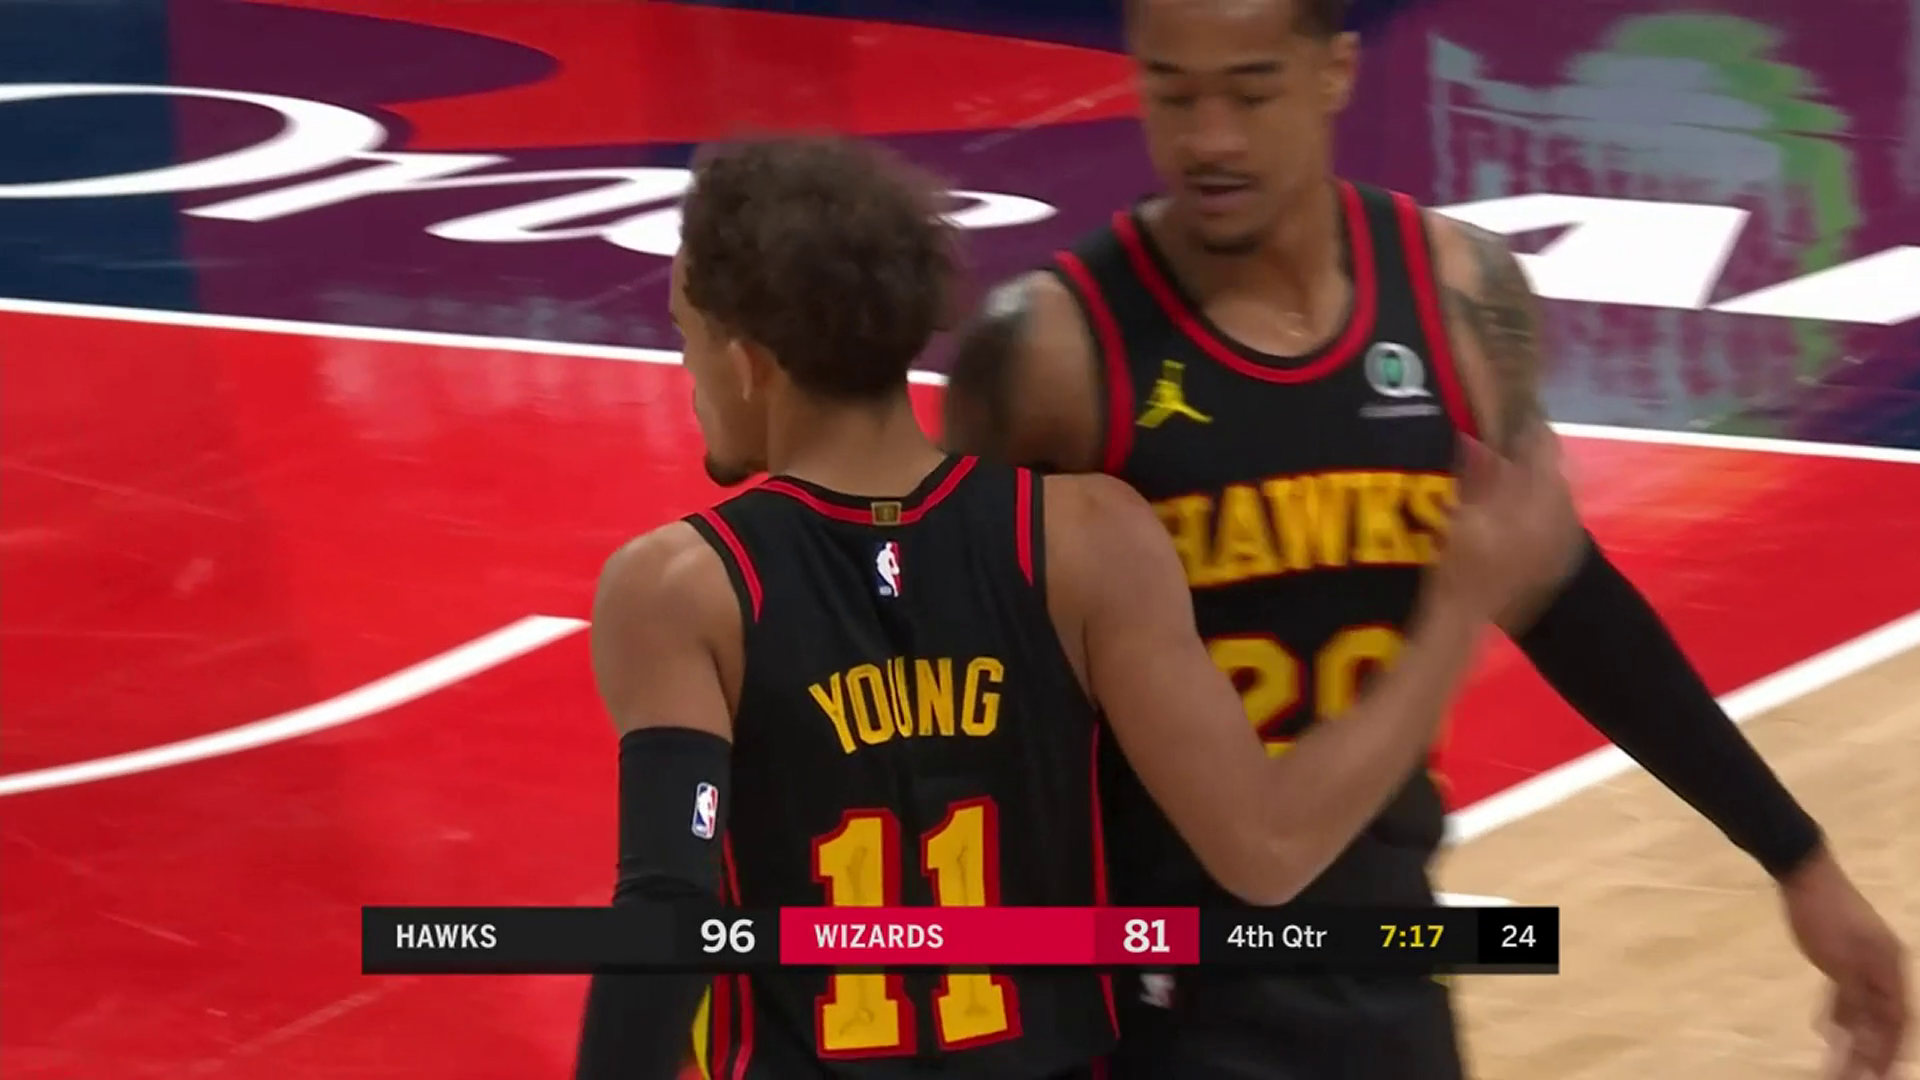 Young Goes Off For 41 Points in Win Over Wizards